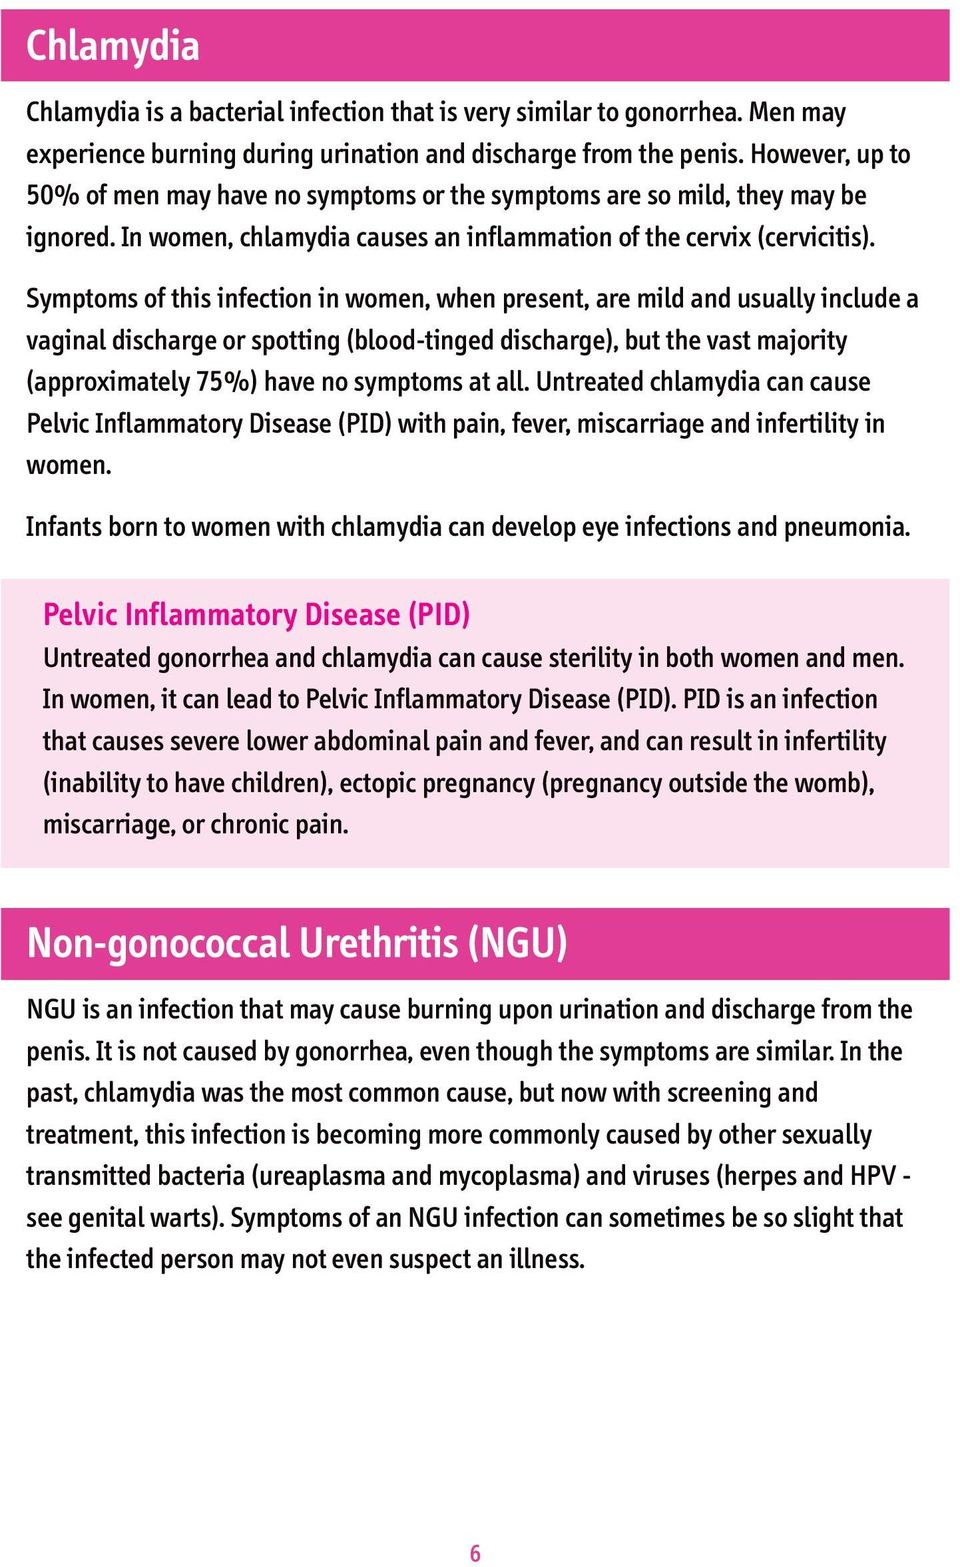 Symptoms of this infection in women, when present, are mild and usually include a vaginal discharge or spotting (blood-tinged discharge), but the vast majority (approximately 75%) have no symptoms at